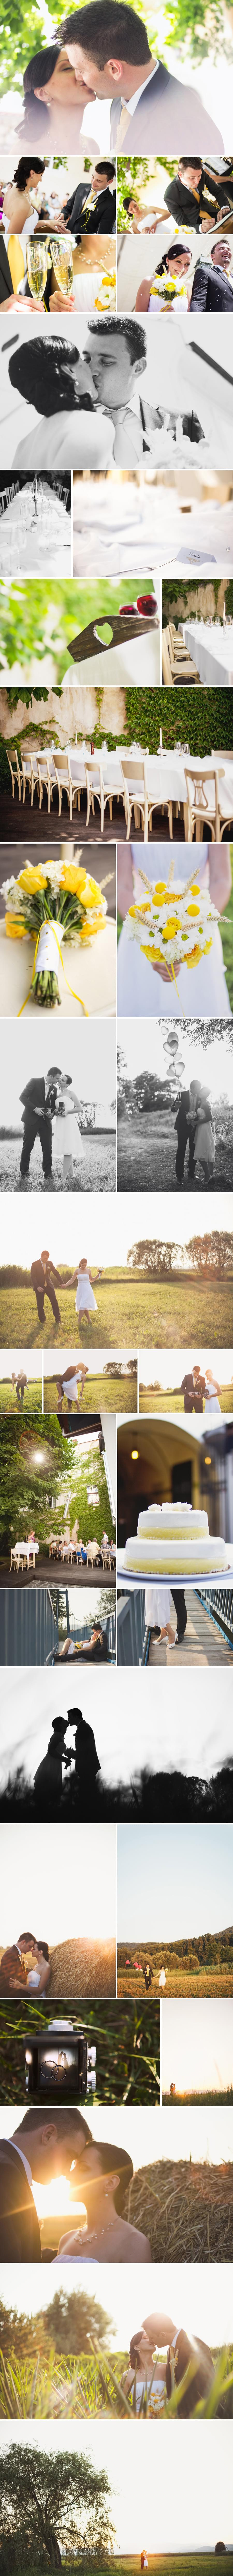 mk photography urska wedding images poland wedding photographer